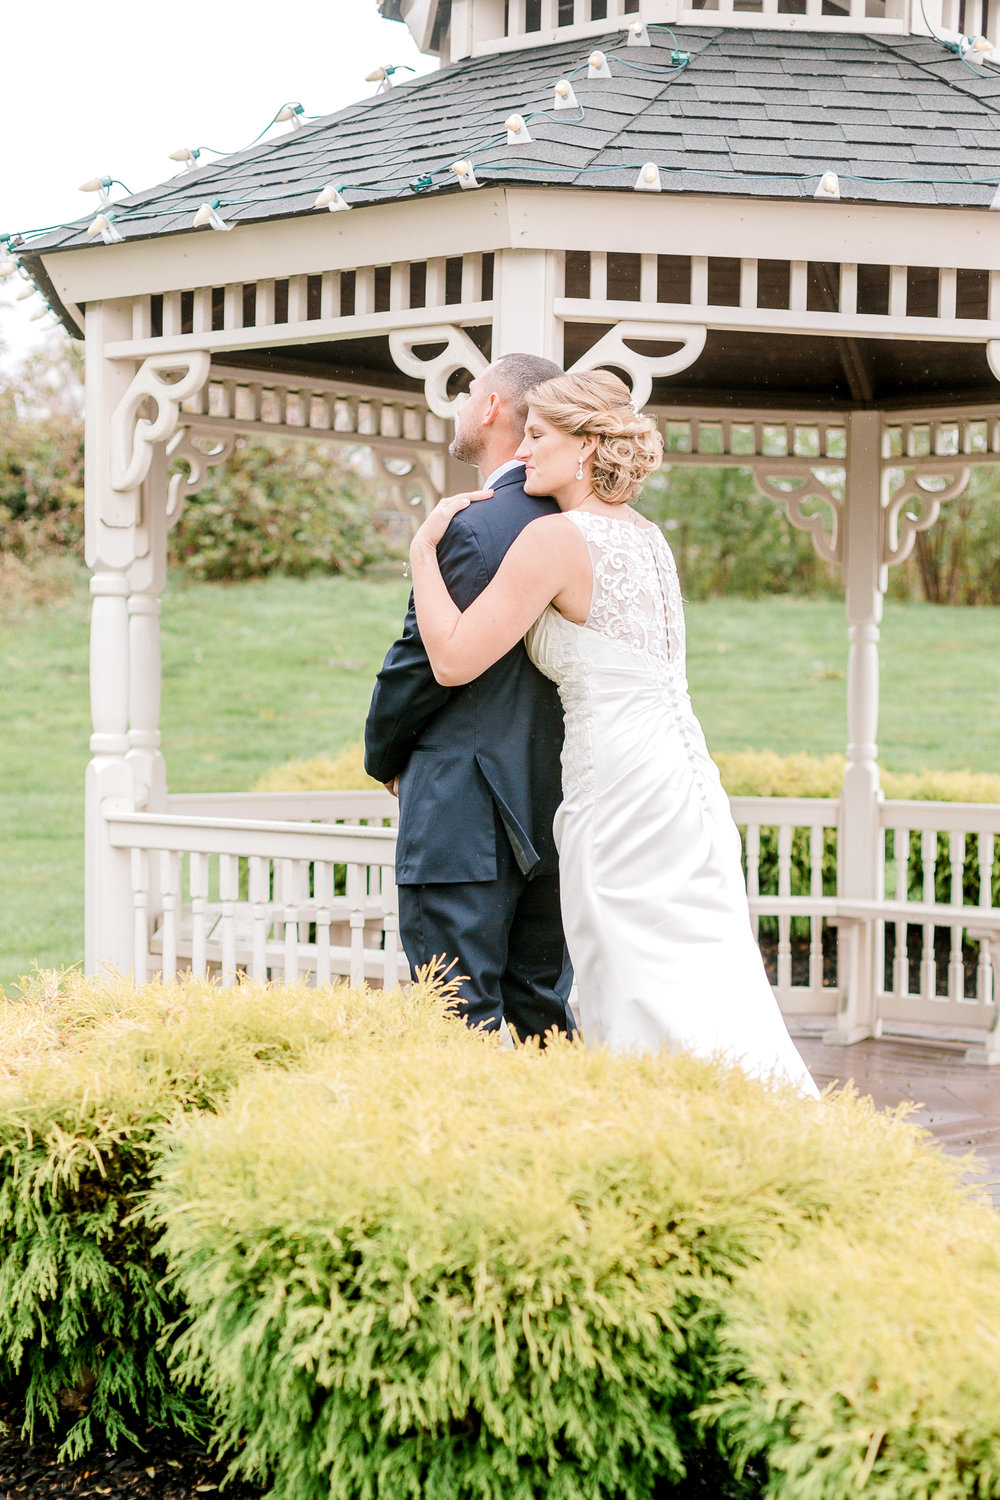 Pennsylvania October Fall Lehigh Valley wedding and lifestyle photographer Lytle Photo Co (40 of 167).jpg